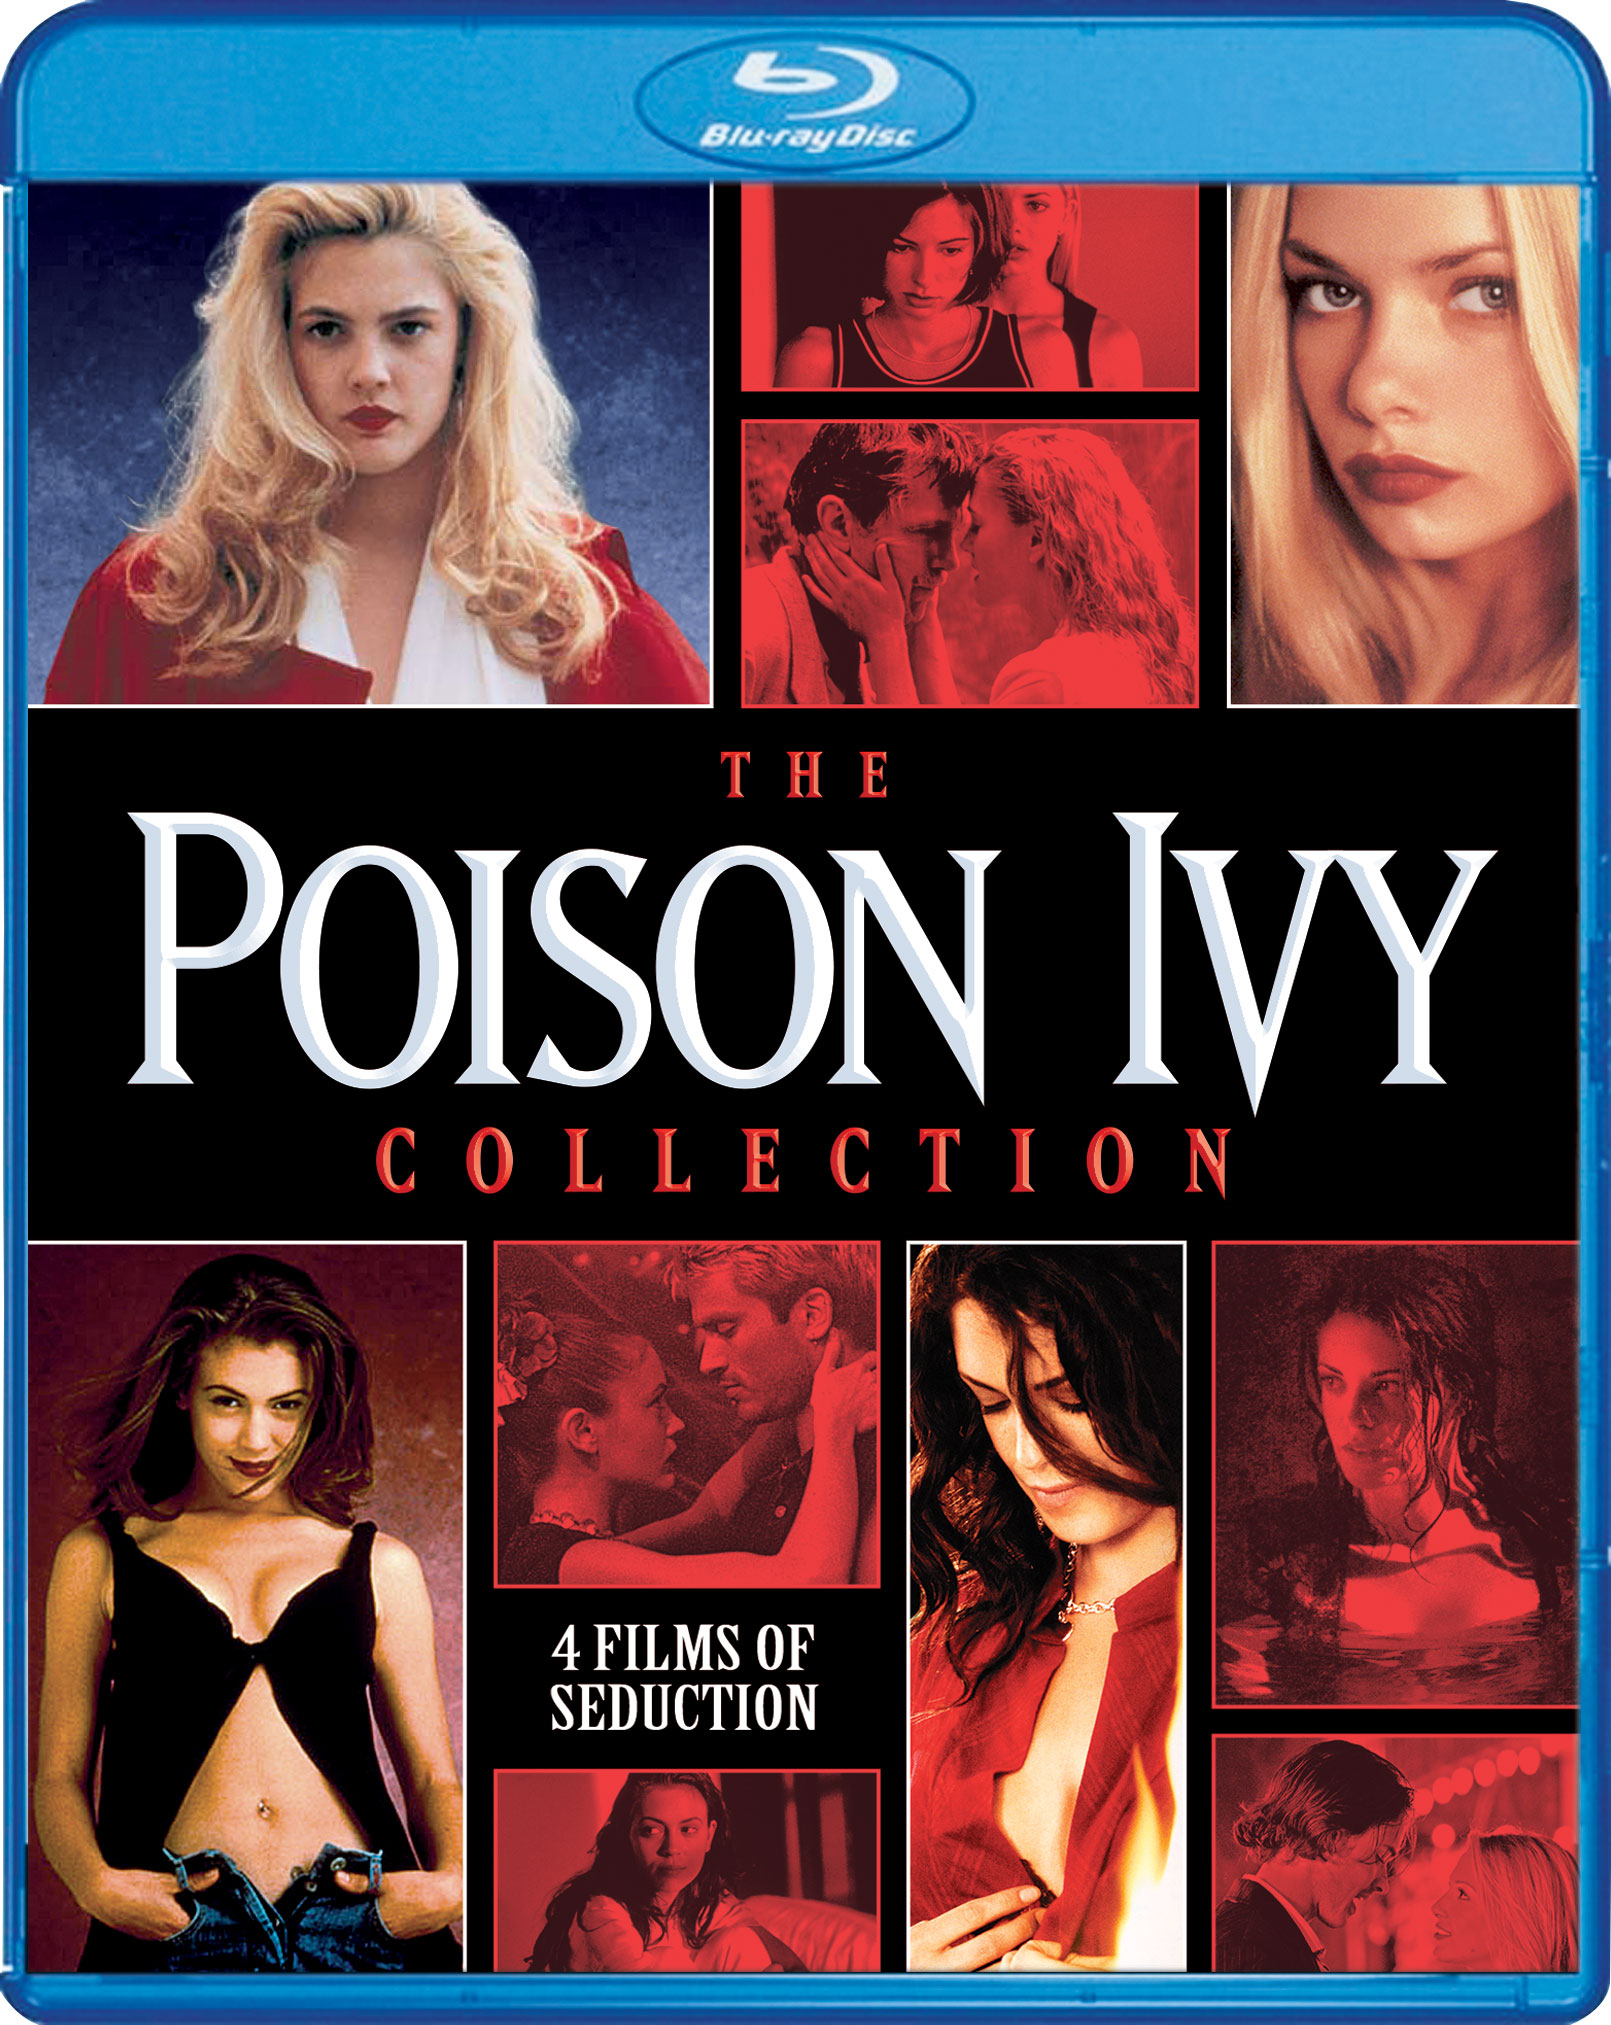 Alyssa Milano Poison Ivy 2 the poison ivy collection blu-ray review (scream factory